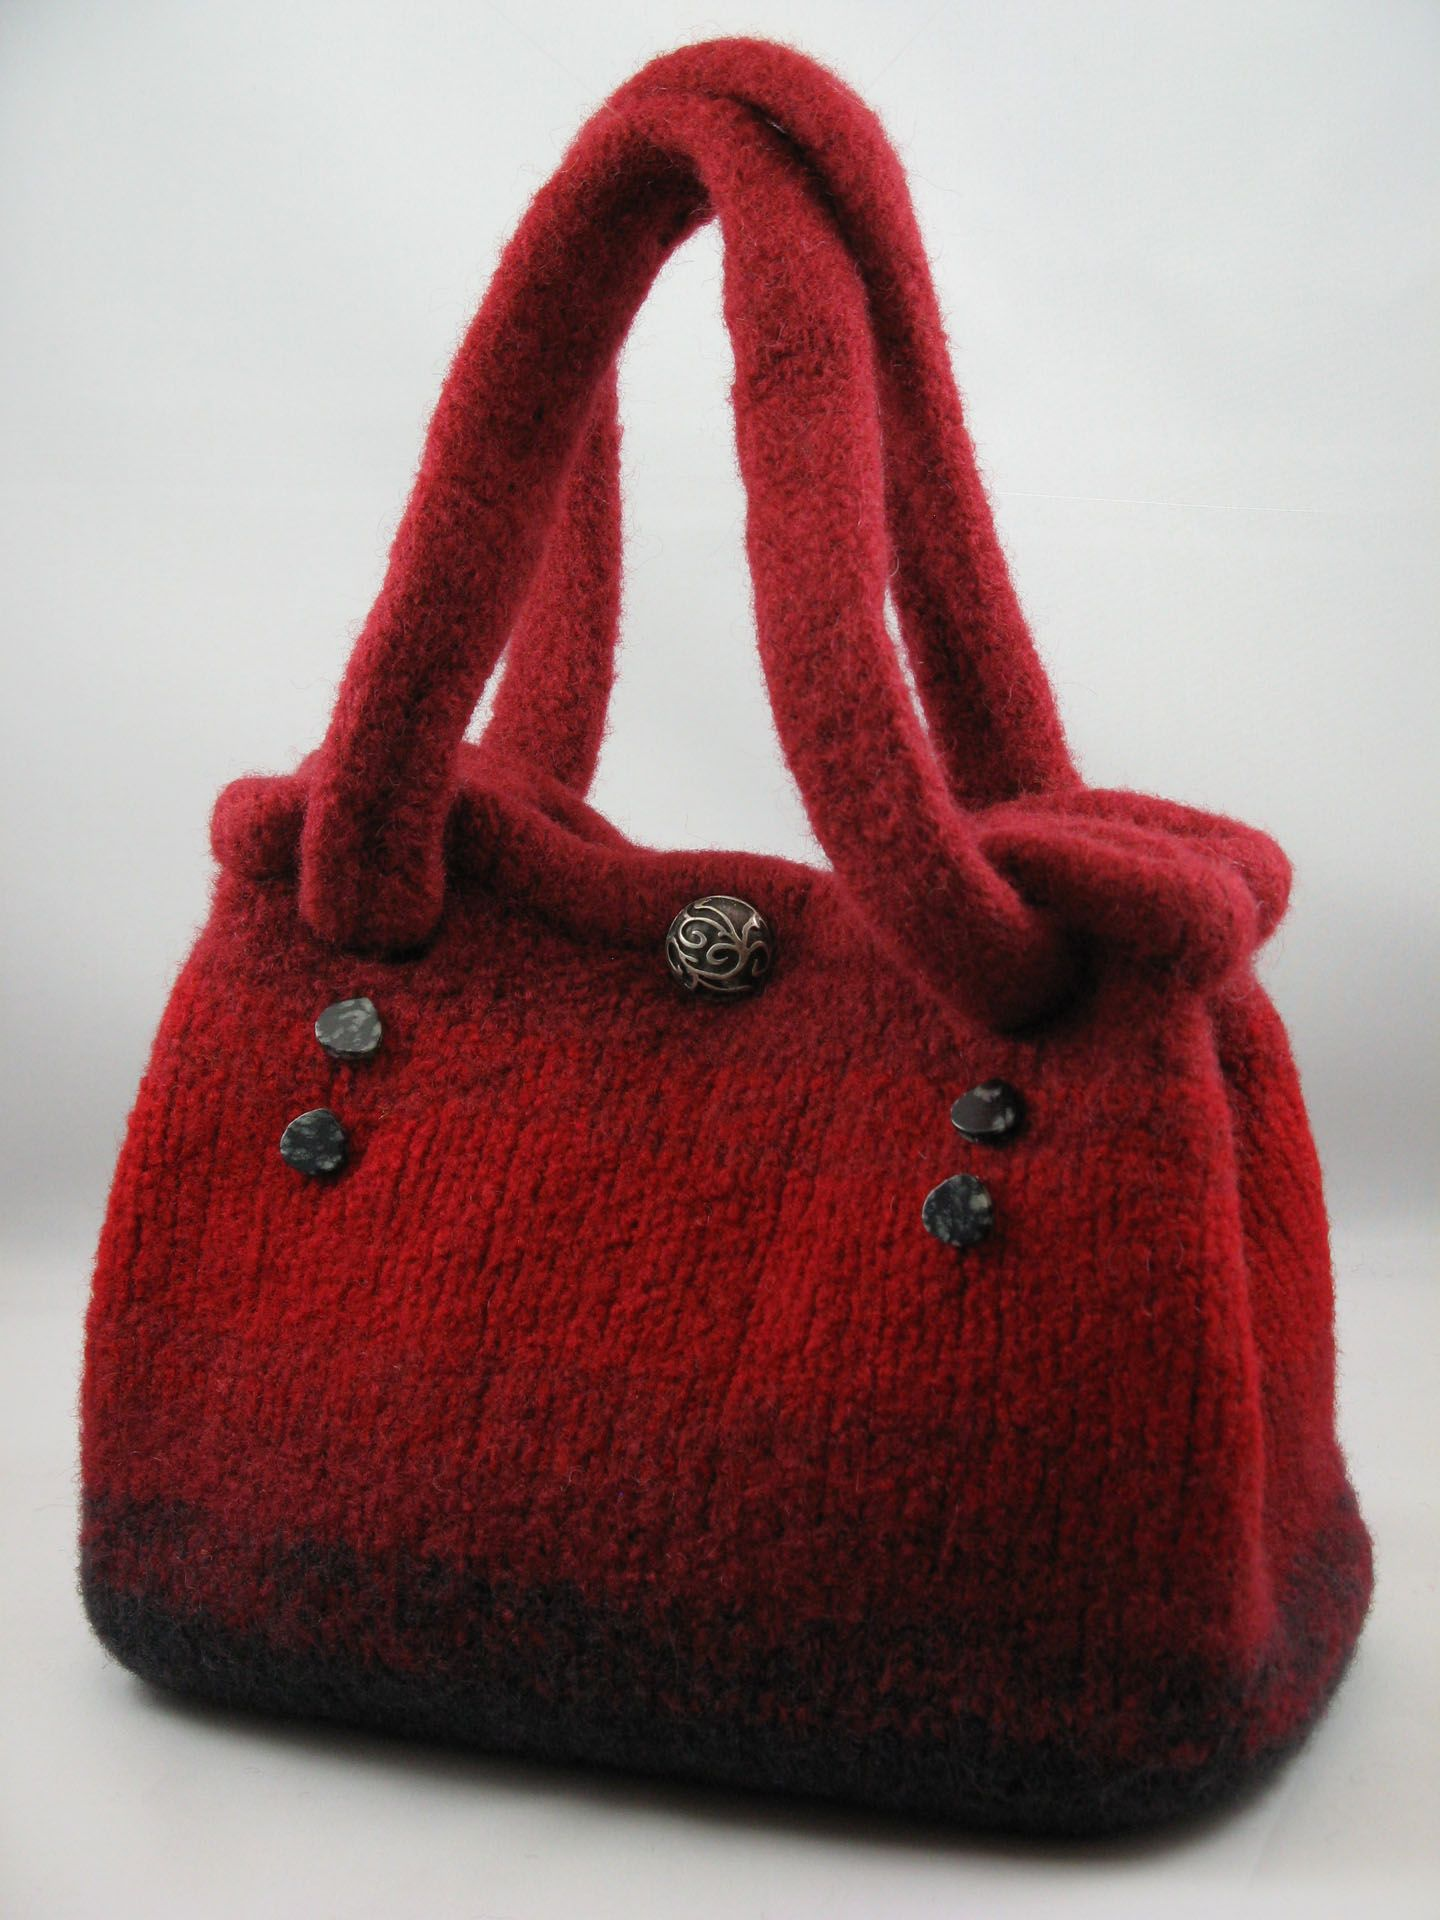 Handmade knitted felt bag felting pinterest felting bag and knitting patterns bankloansurffo Gallery